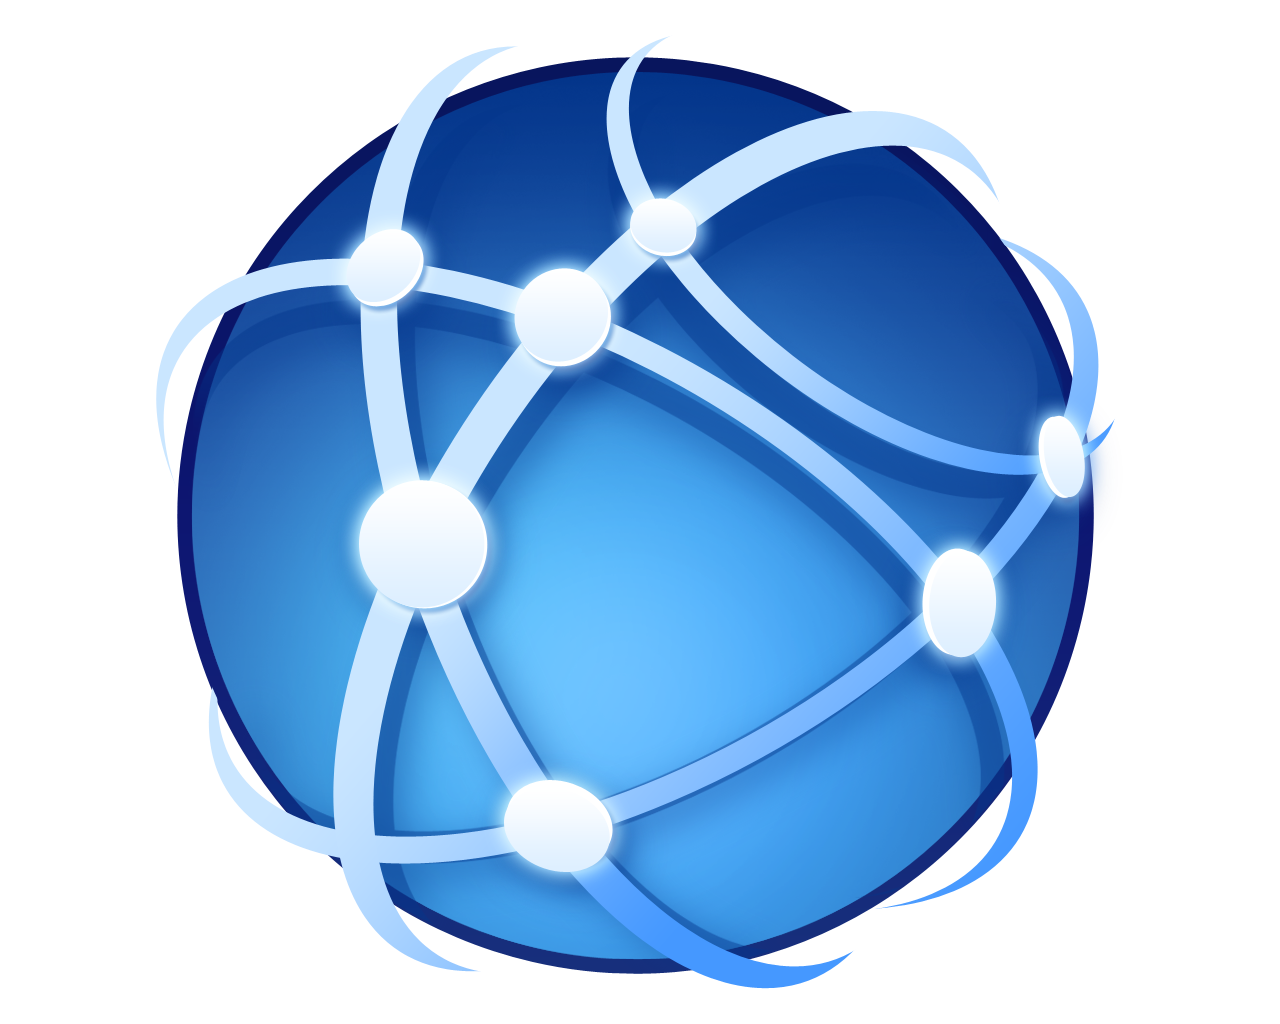 index icon intensive care online network icon